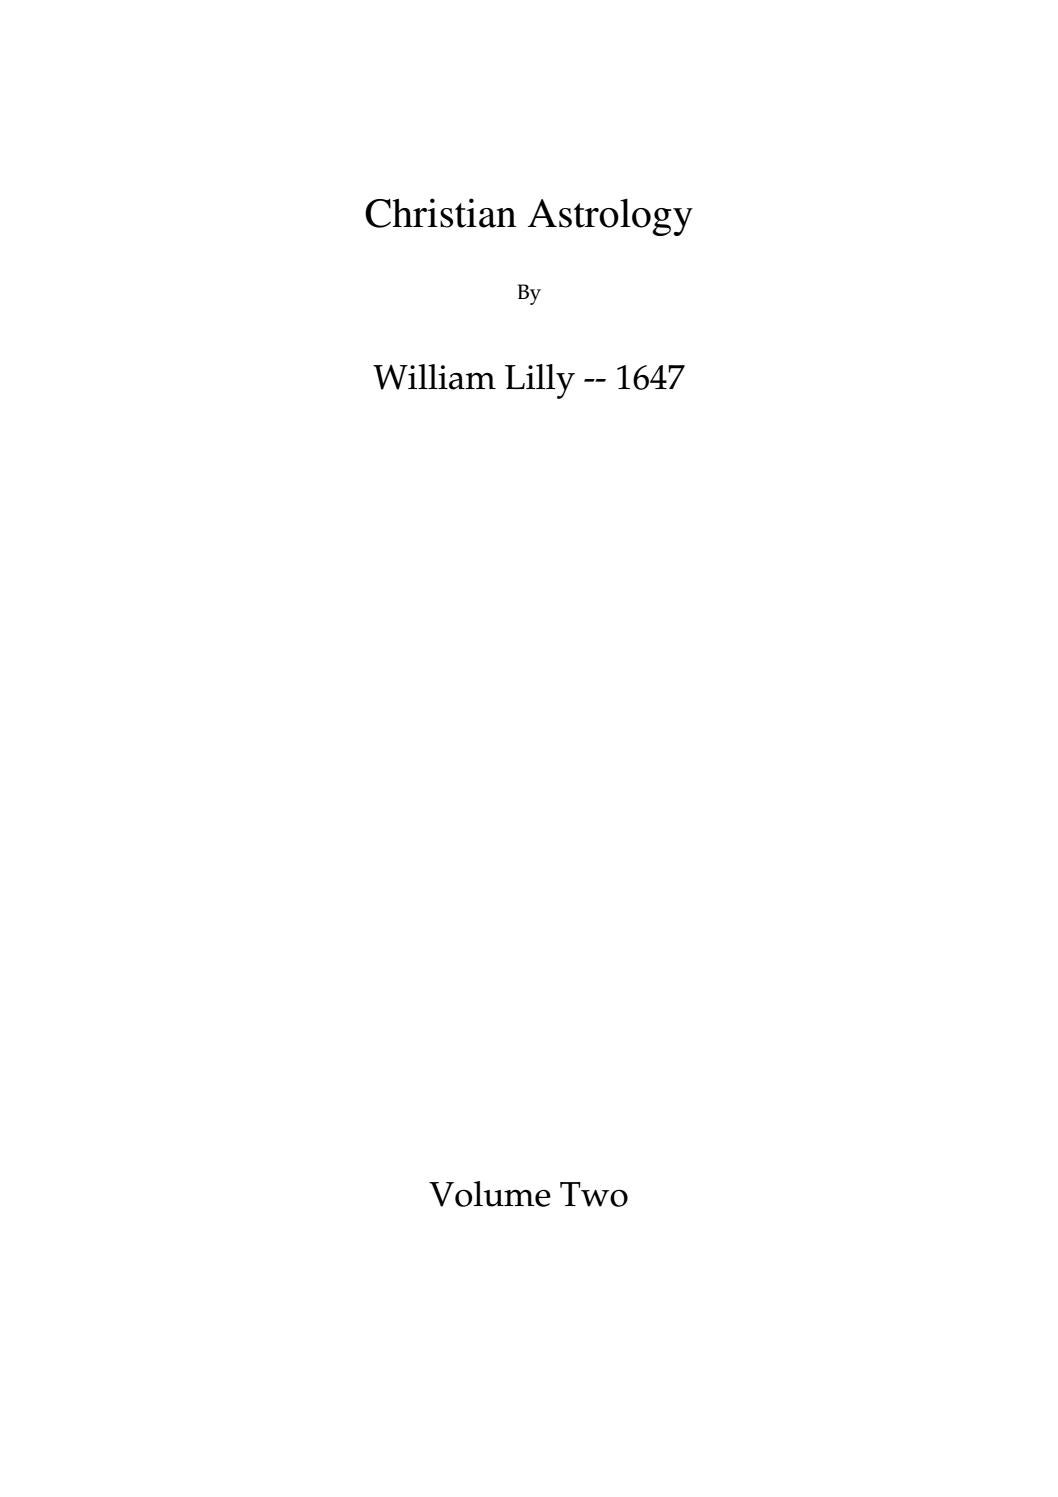 William lilly christian astrology book ii by